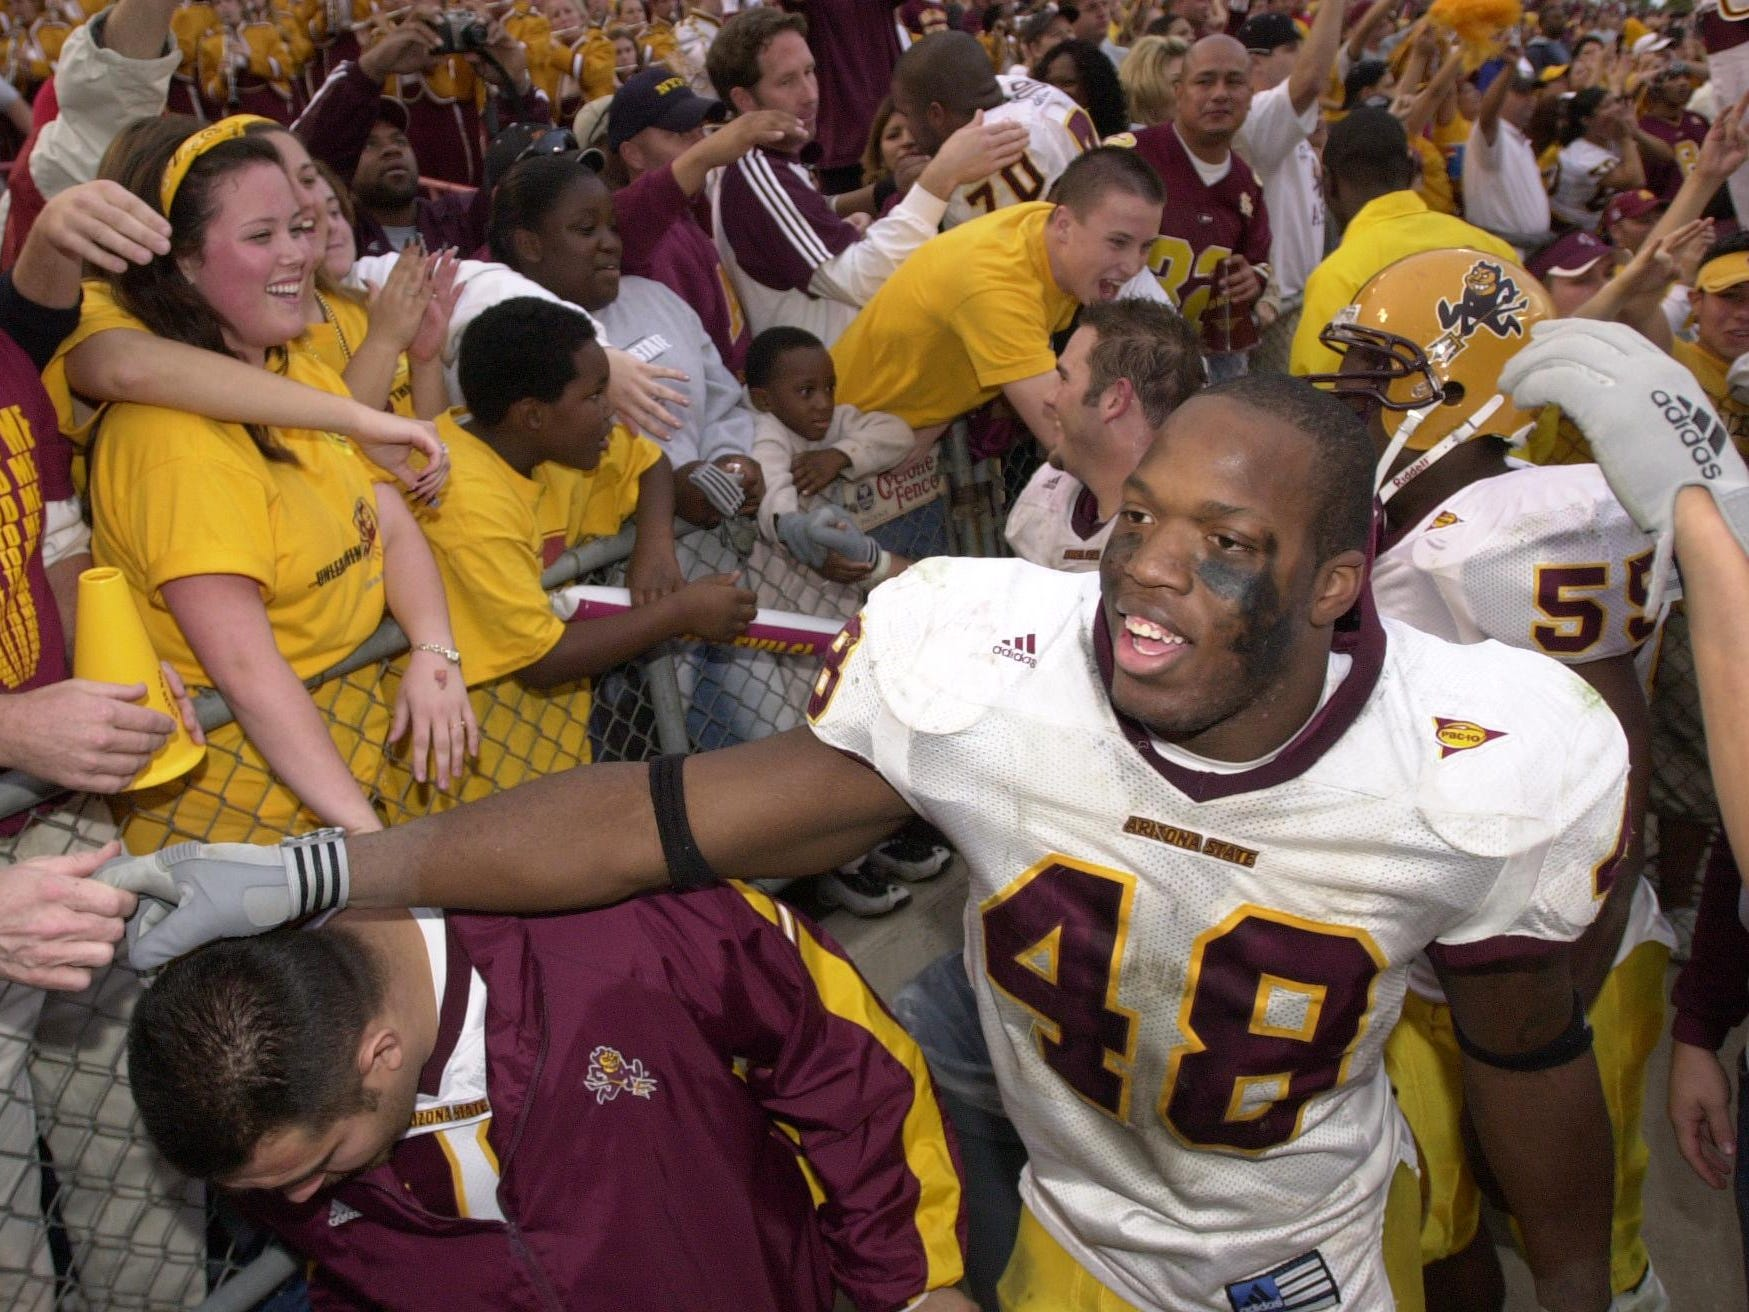 ASU's Terrell Suggs celebrates with the Sun Devils fans after ASU defeated the Wildcats 34-20 in Tucson Nov. 29, 2002.